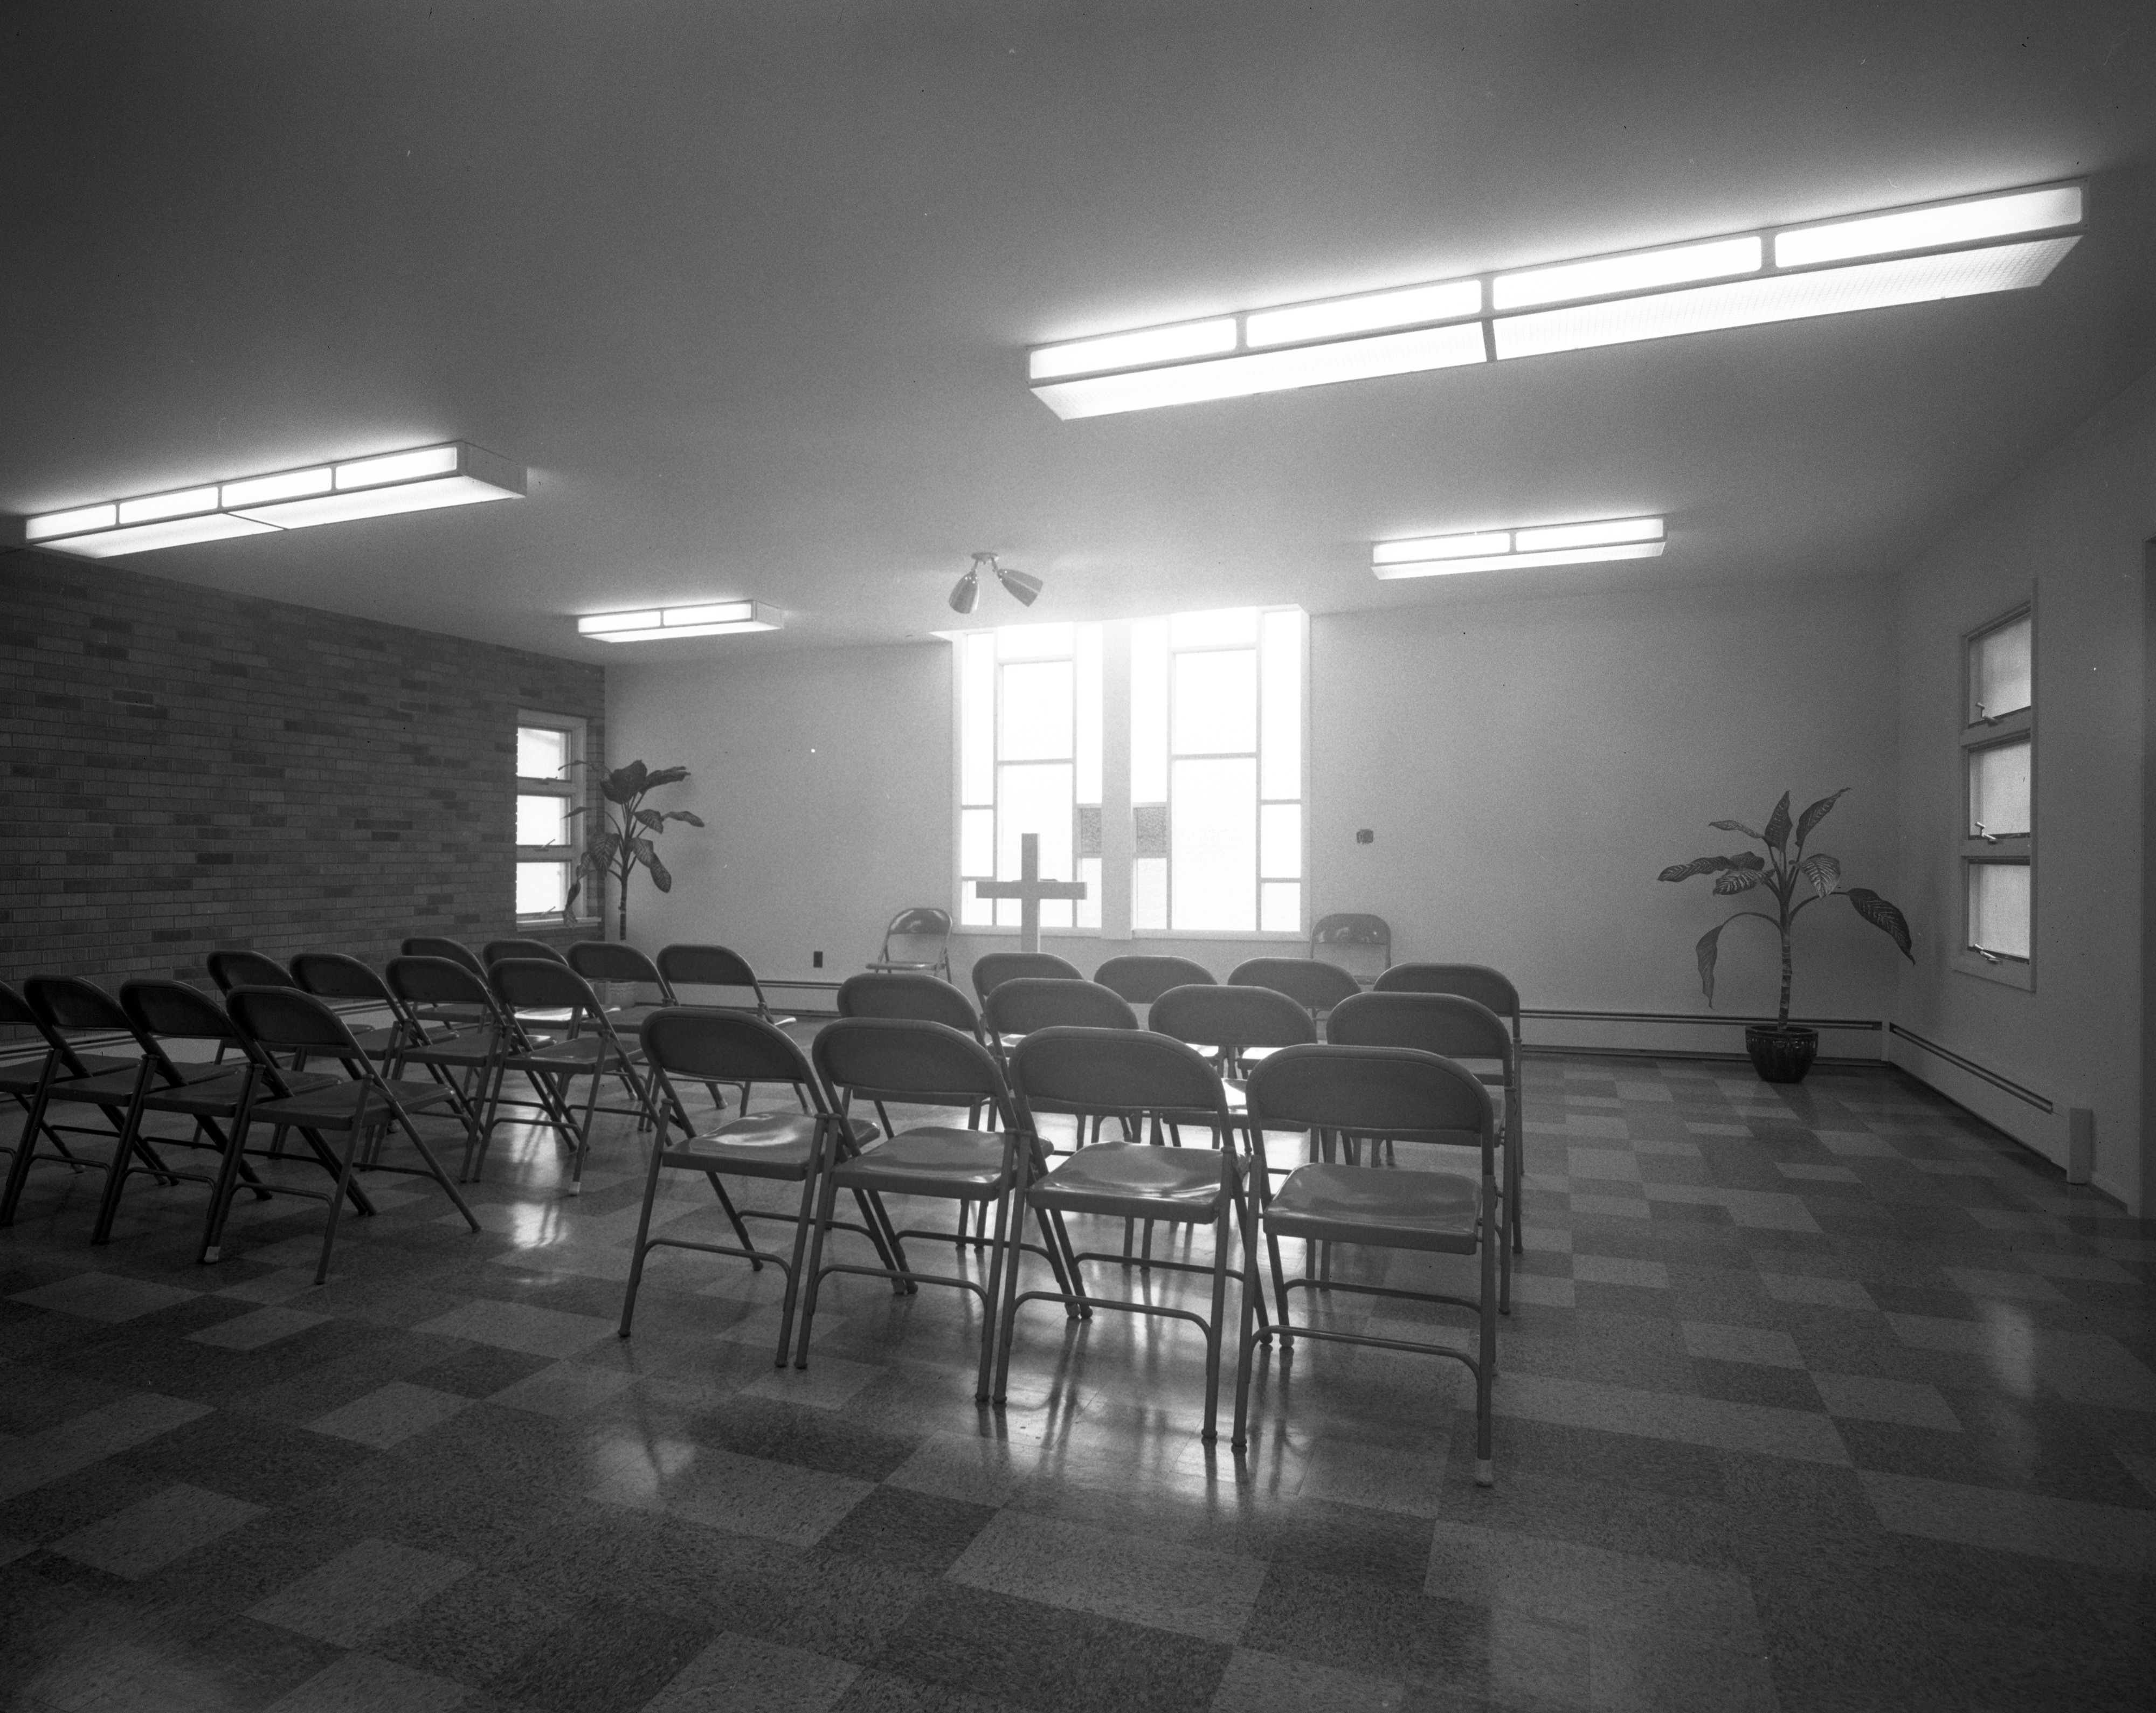 Addition to the Church of the Nazarene, April 1962 image